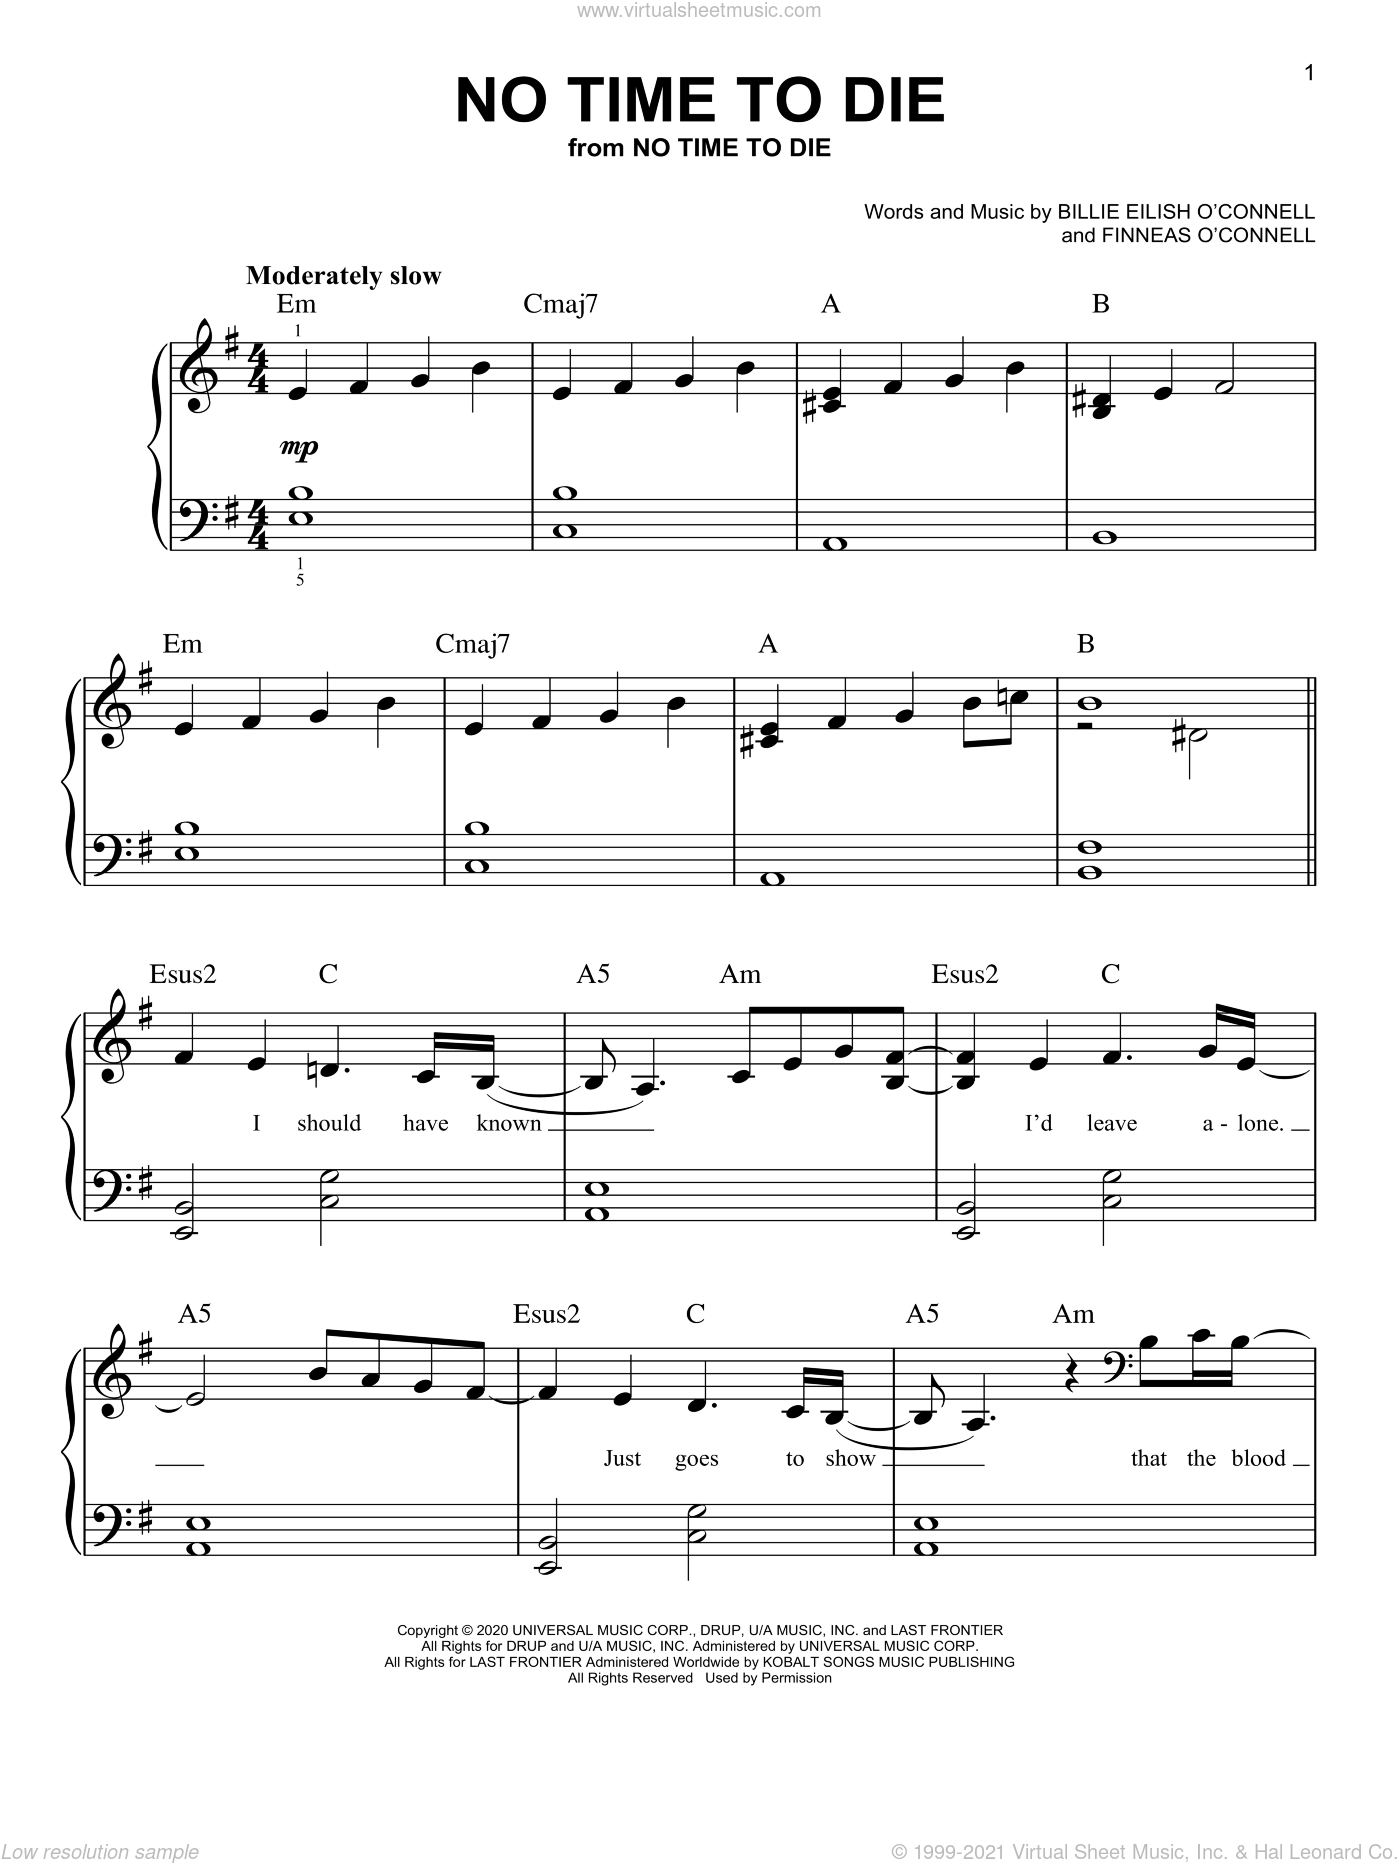 No Time To Die sheet music for piano solo by Billie Eilish, easy skill level